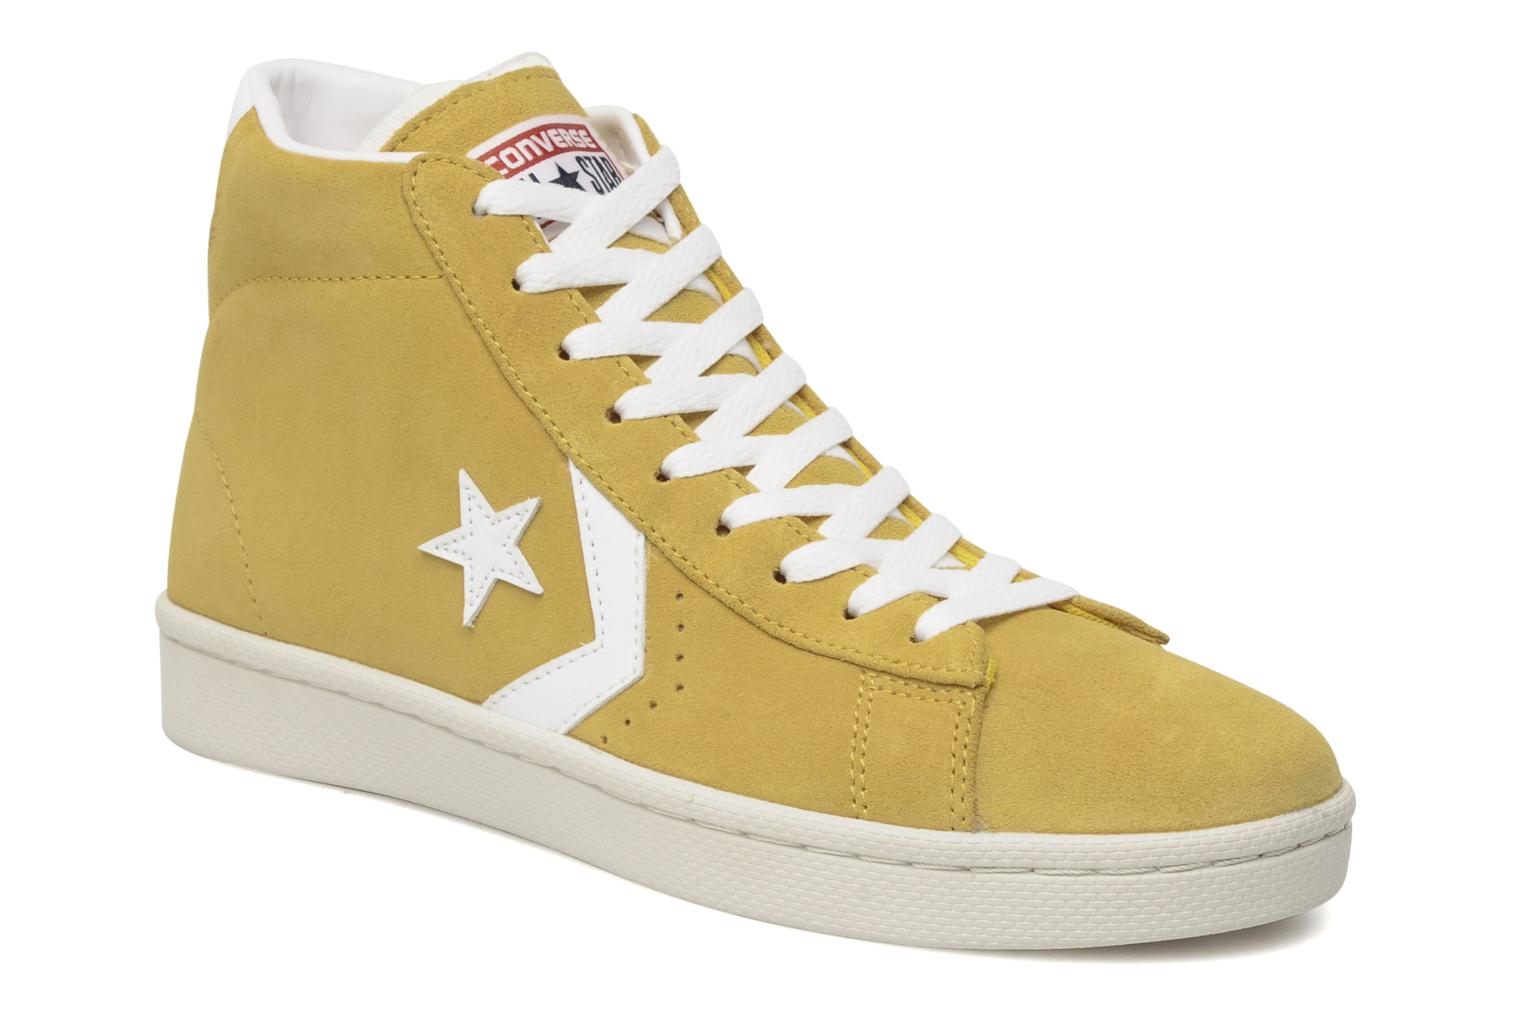 converse pro leather yellow